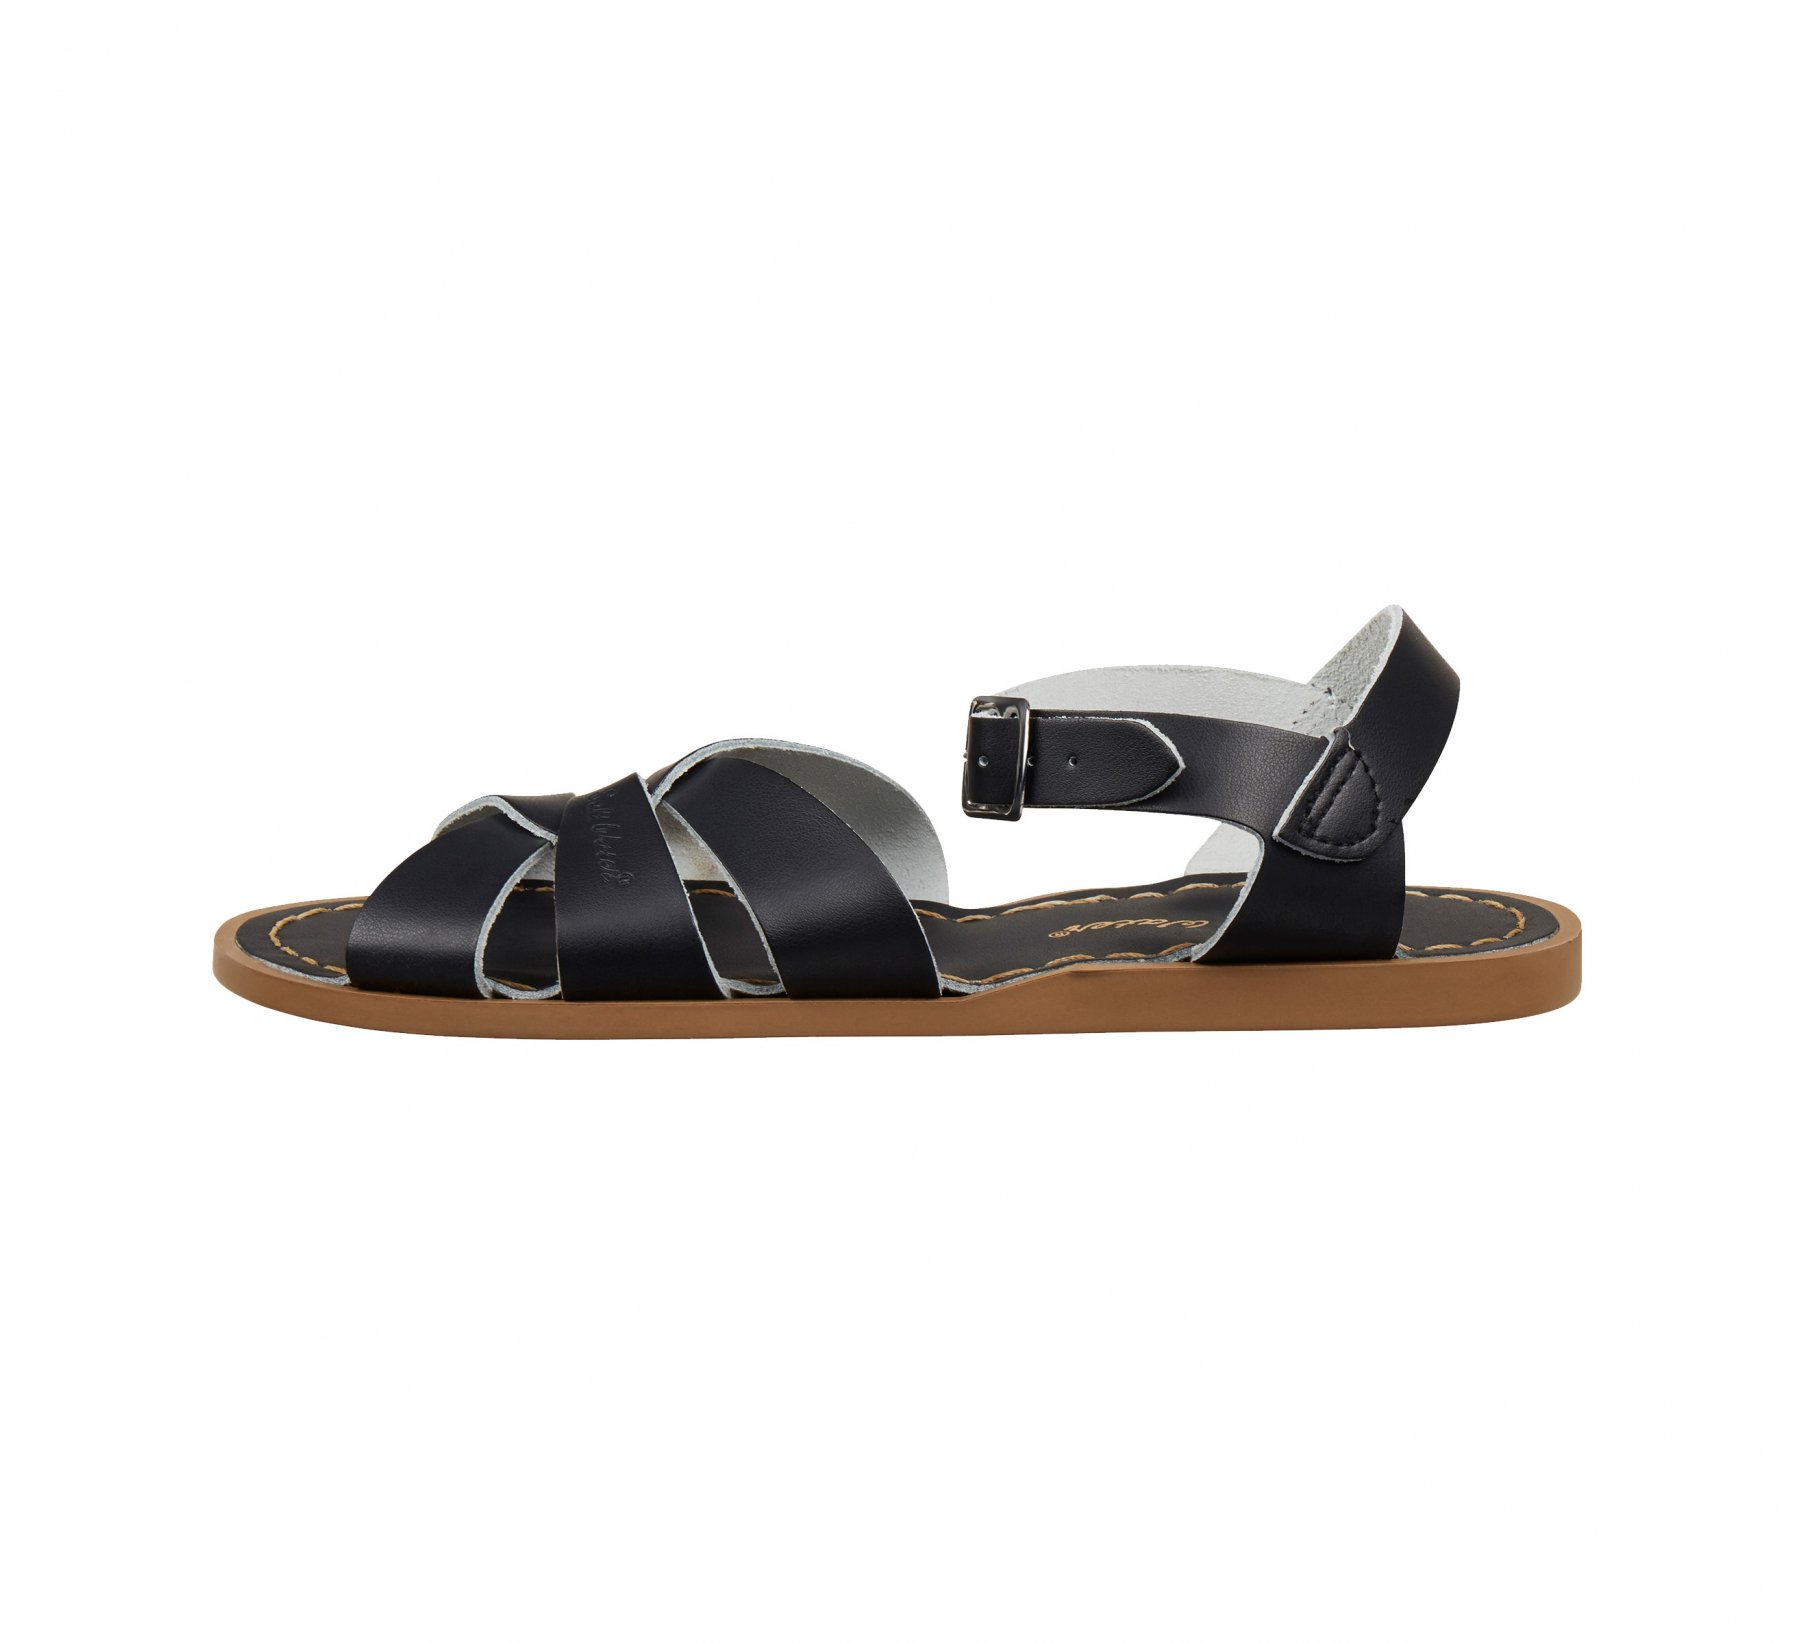 Original Hitam - Salt Water Sandals